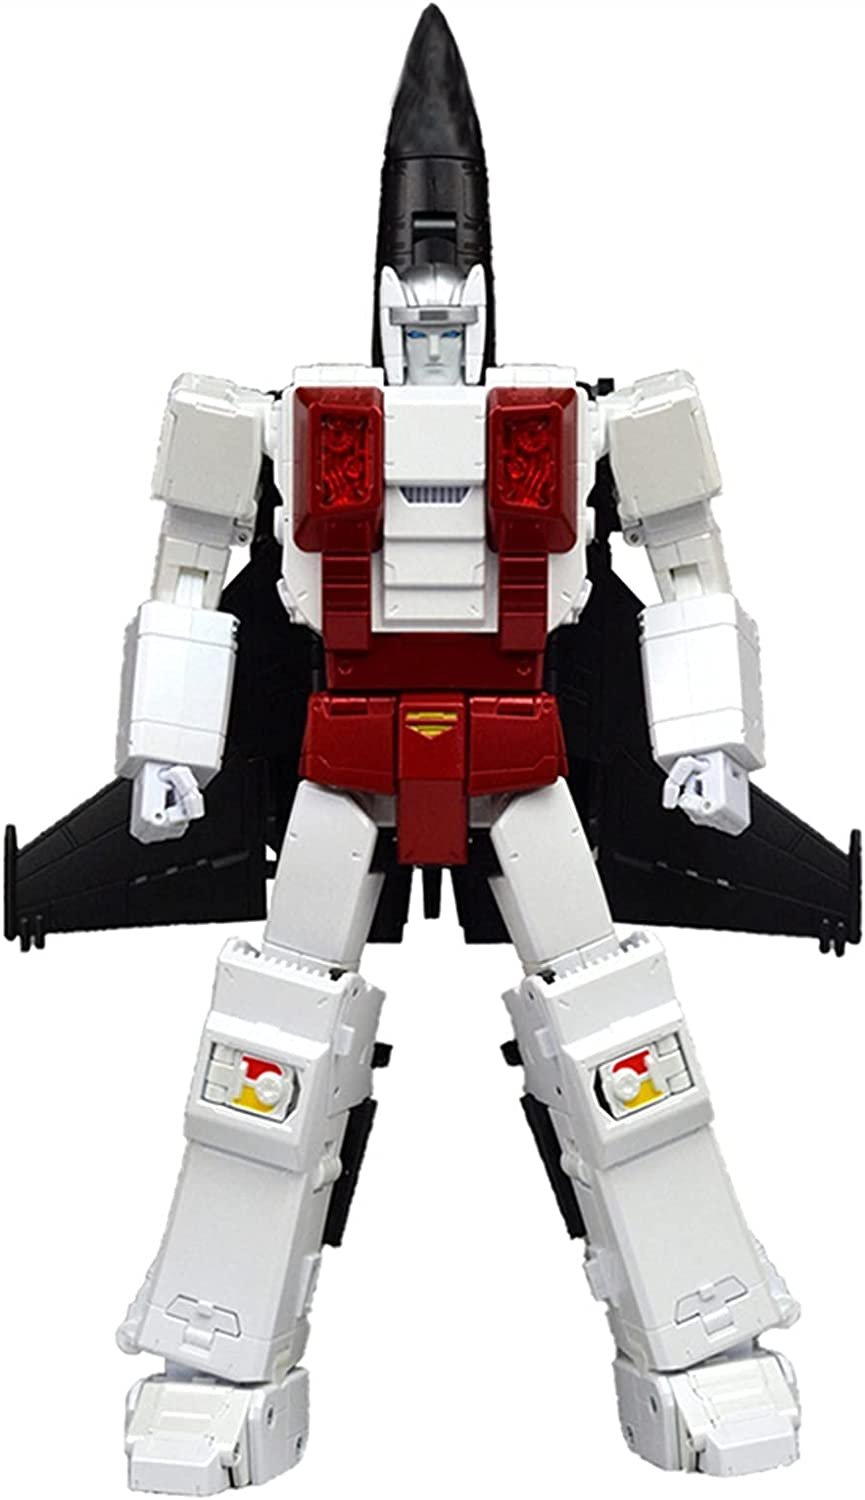 XILALA Transformers Toys Transformation Toy Action 23cm Figure OFFicial shop Denver Mall